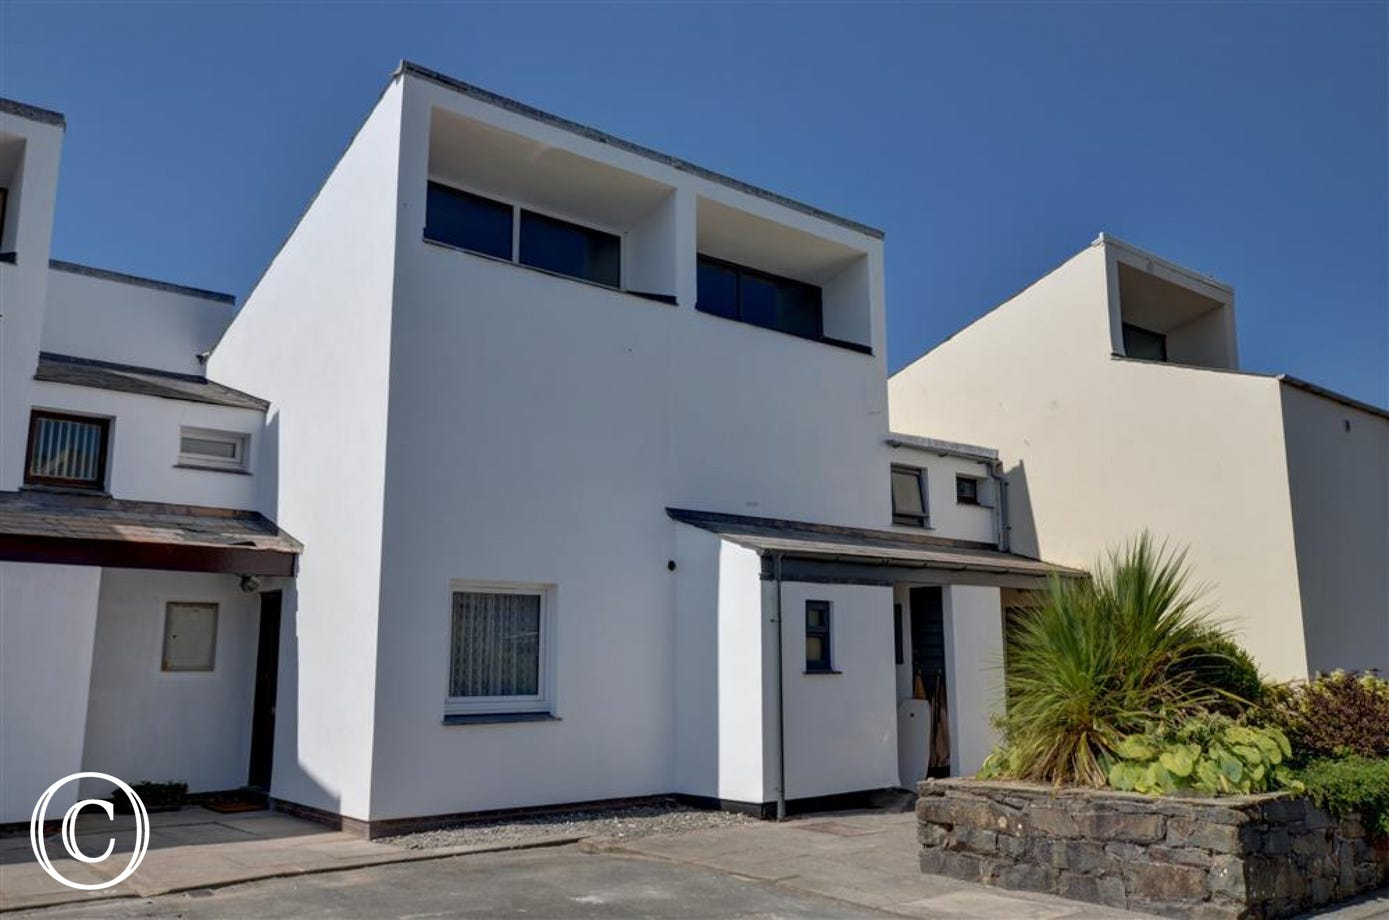 50 South Snowdon Wharf is a mews-style property at Porthmadog with balcony overlooking the marina